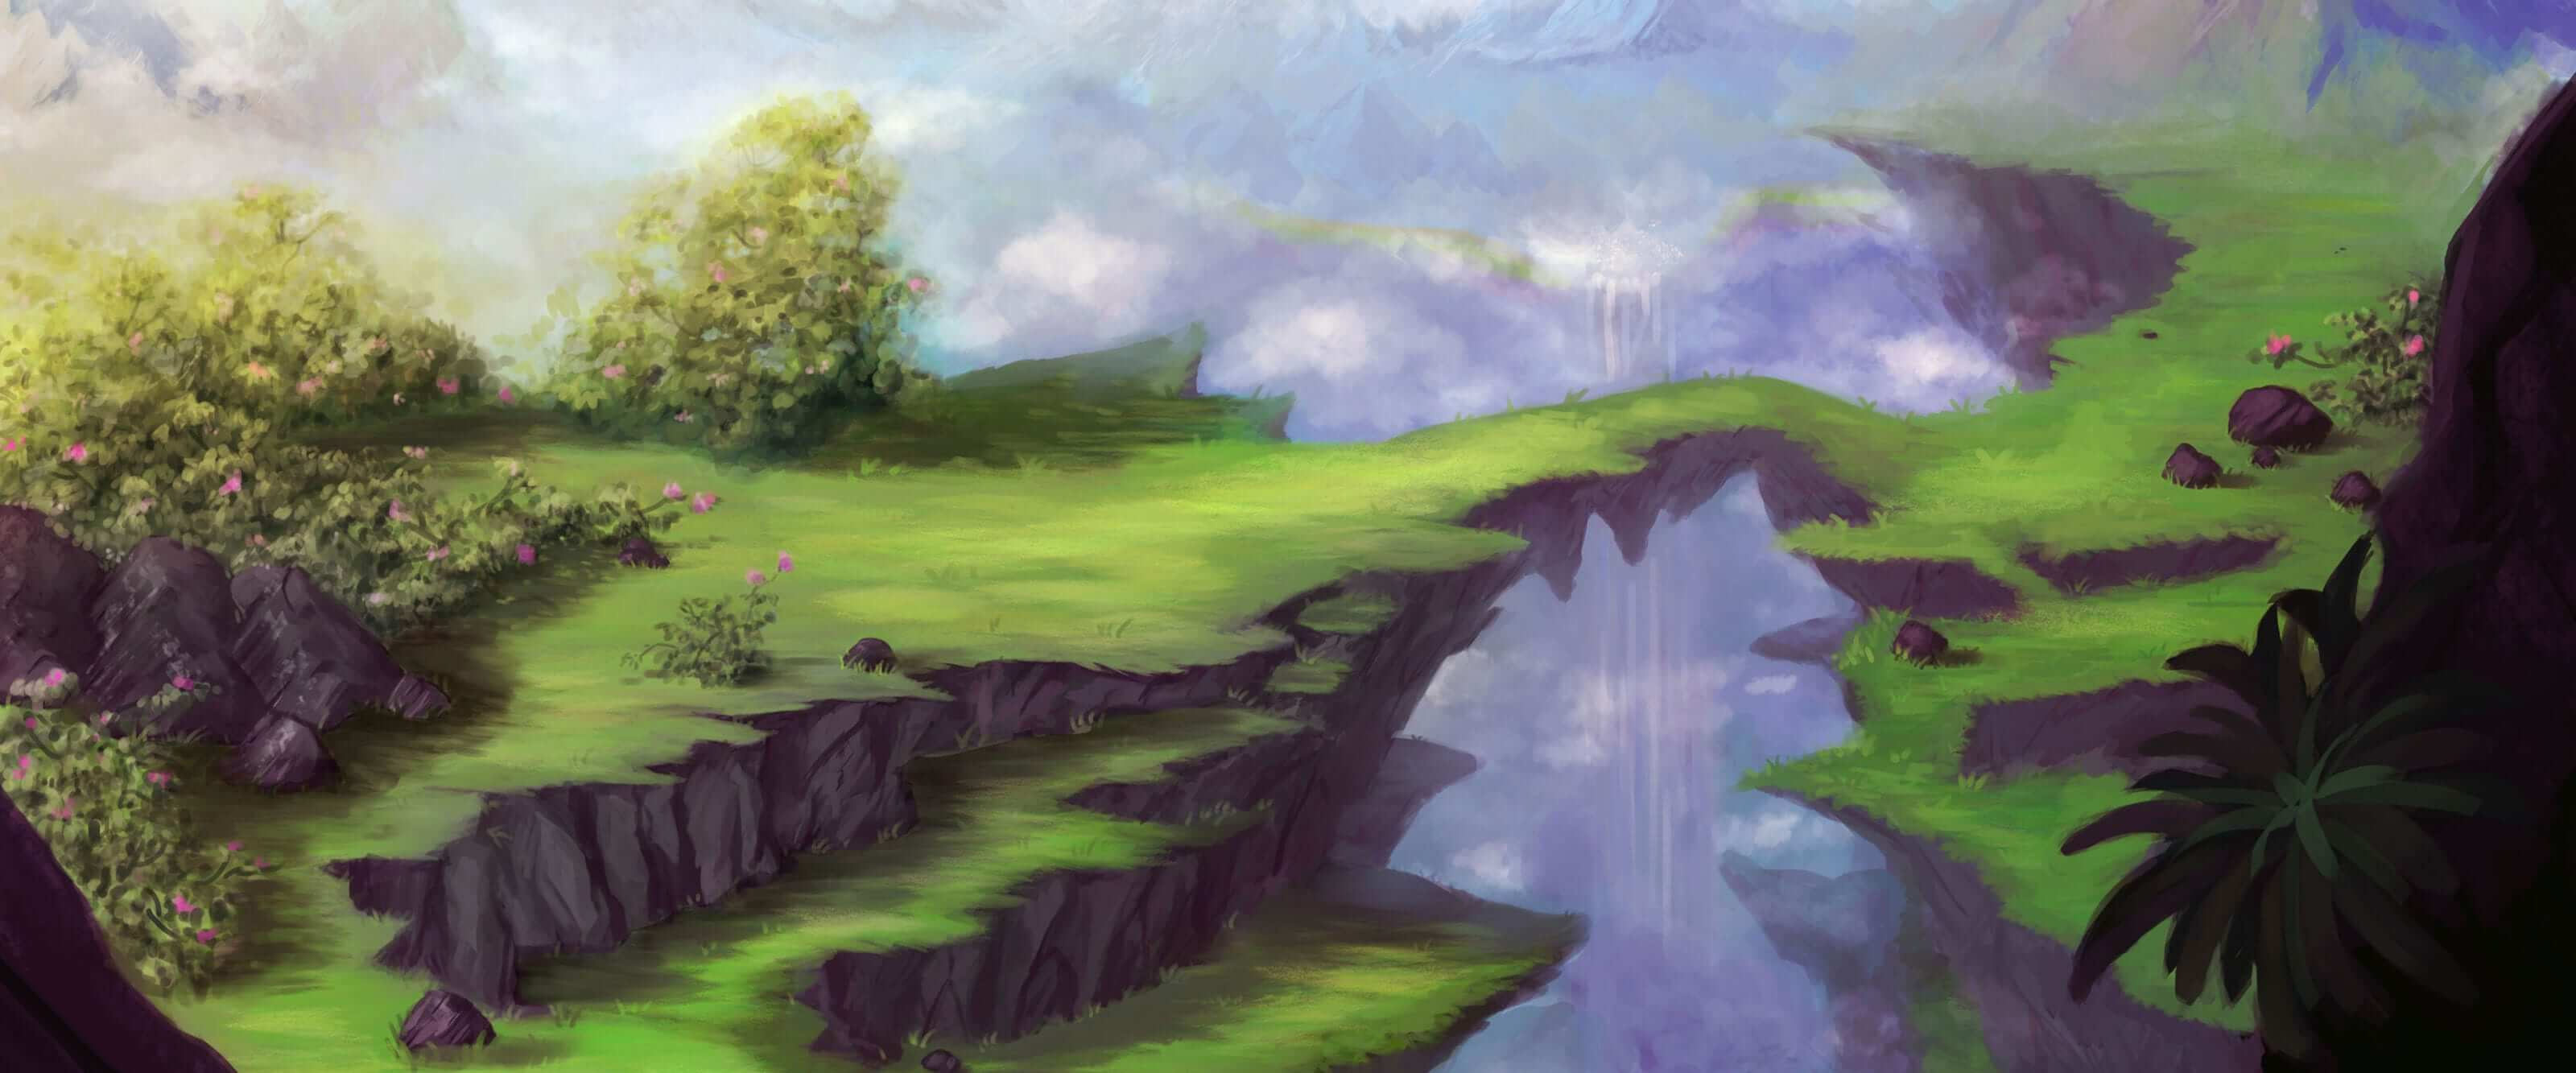 A digital landscape painting of lush, grassy cliffs connected by a thin natural bridge with a tall waterfall seen far behind.